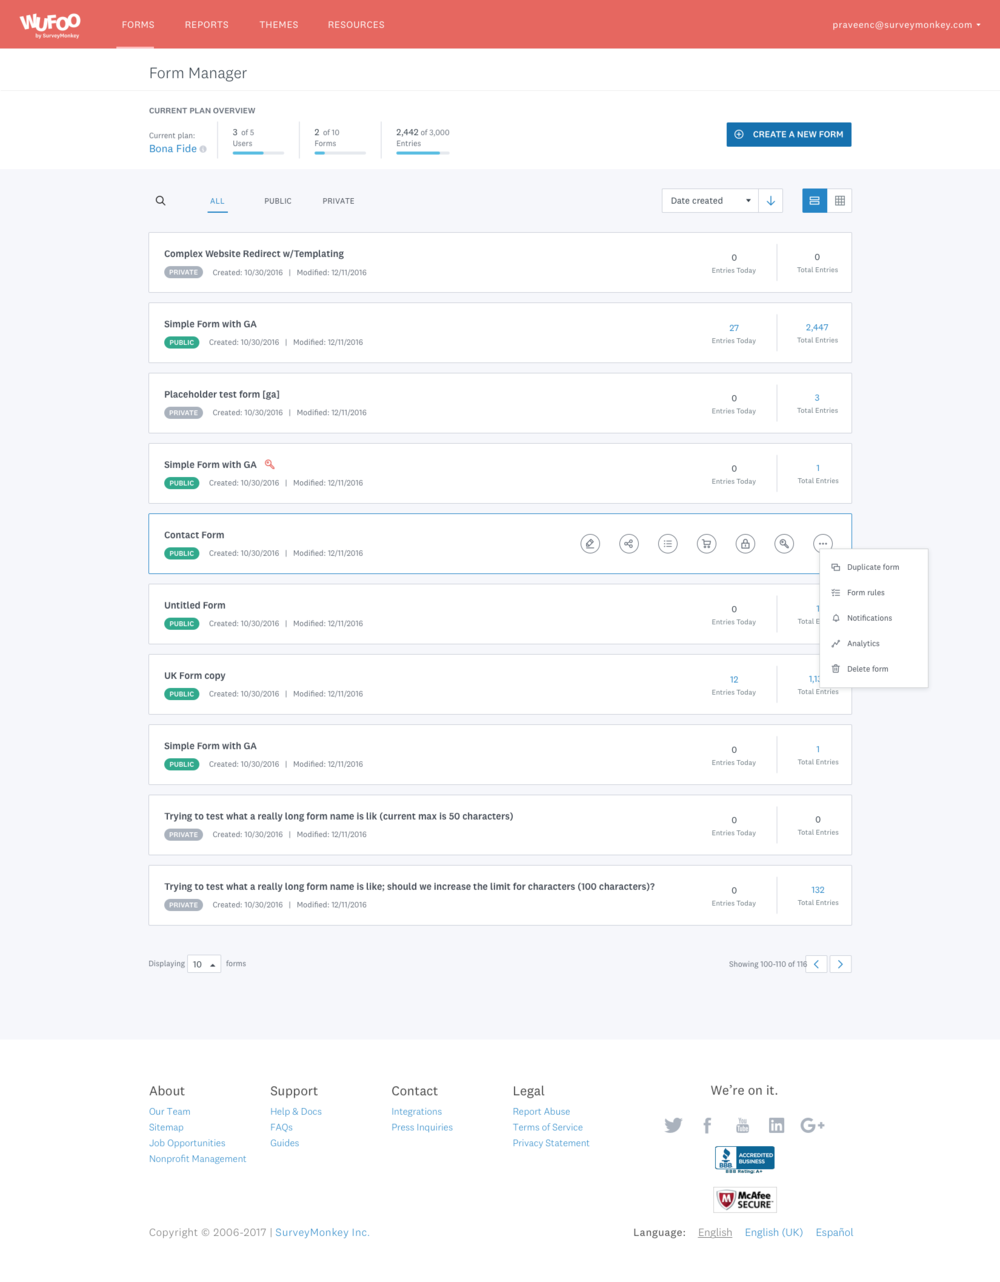 formmanager-paid-dashboard-form-hover-more.png